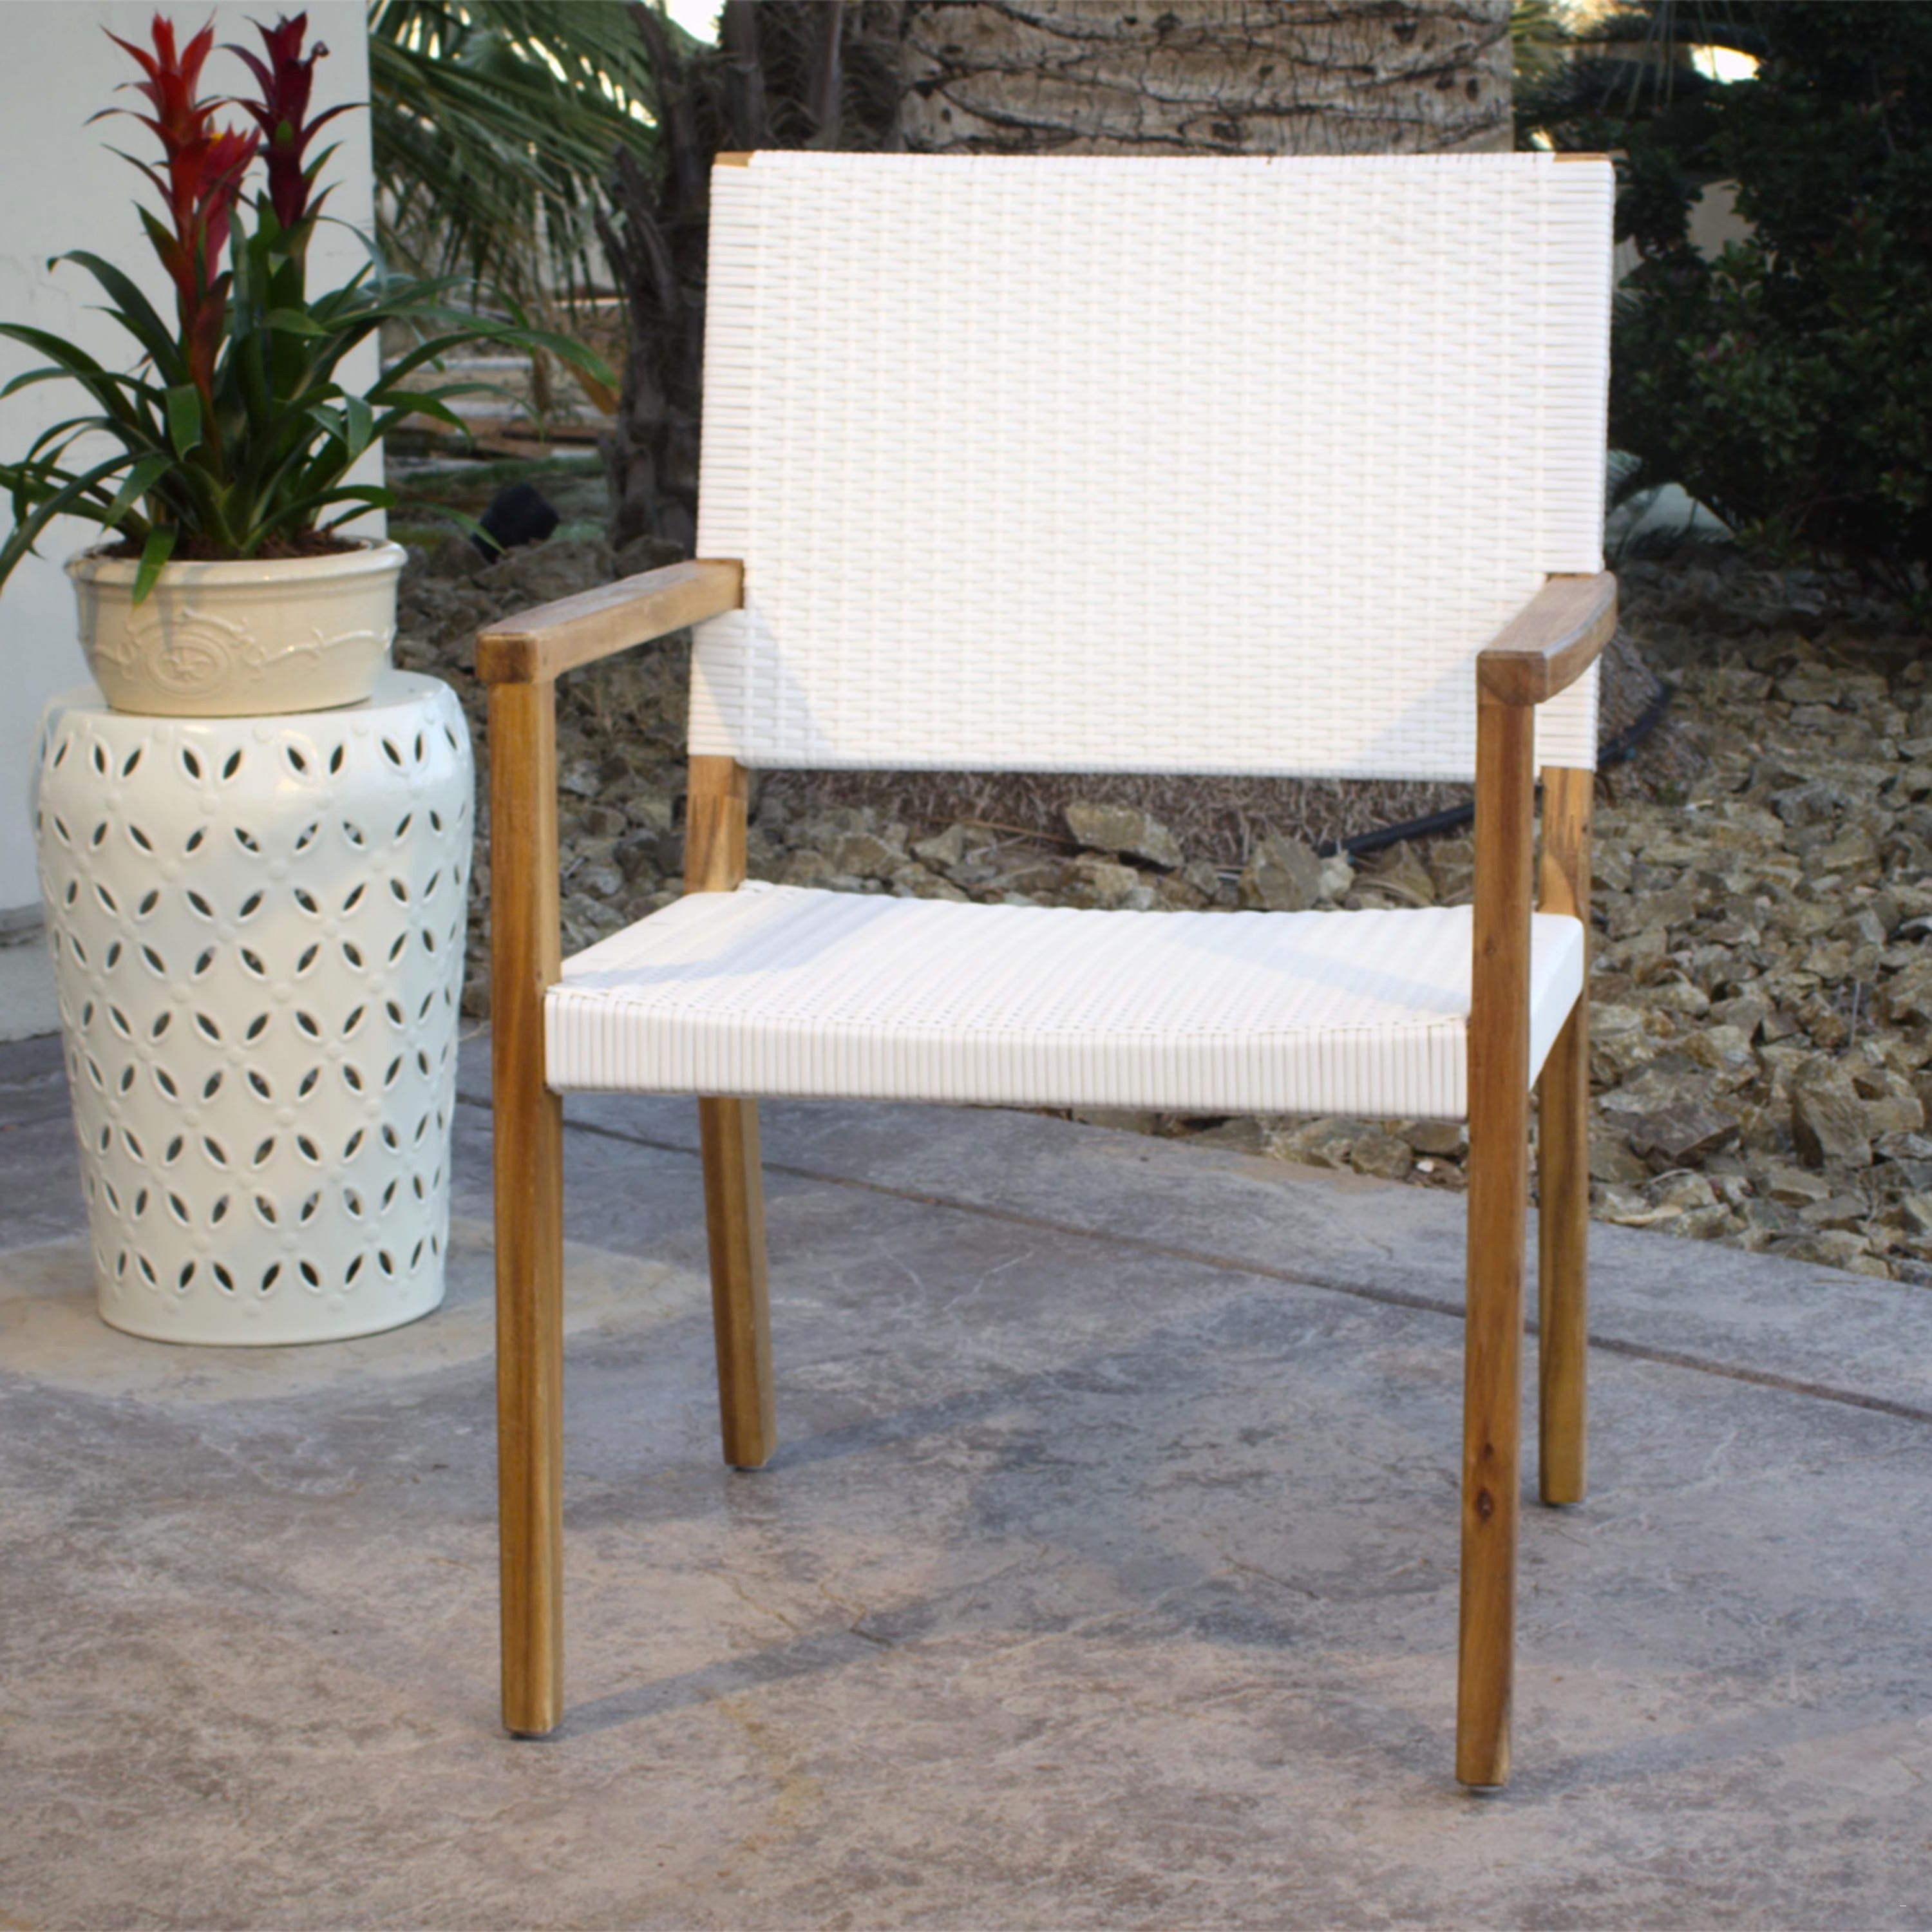 Widely Used Used Patio Rocking Chairs With Regard To 40 Best Outdoor Furniture Rocking Chair Scheme Of Used Patio (View 5 of 20)